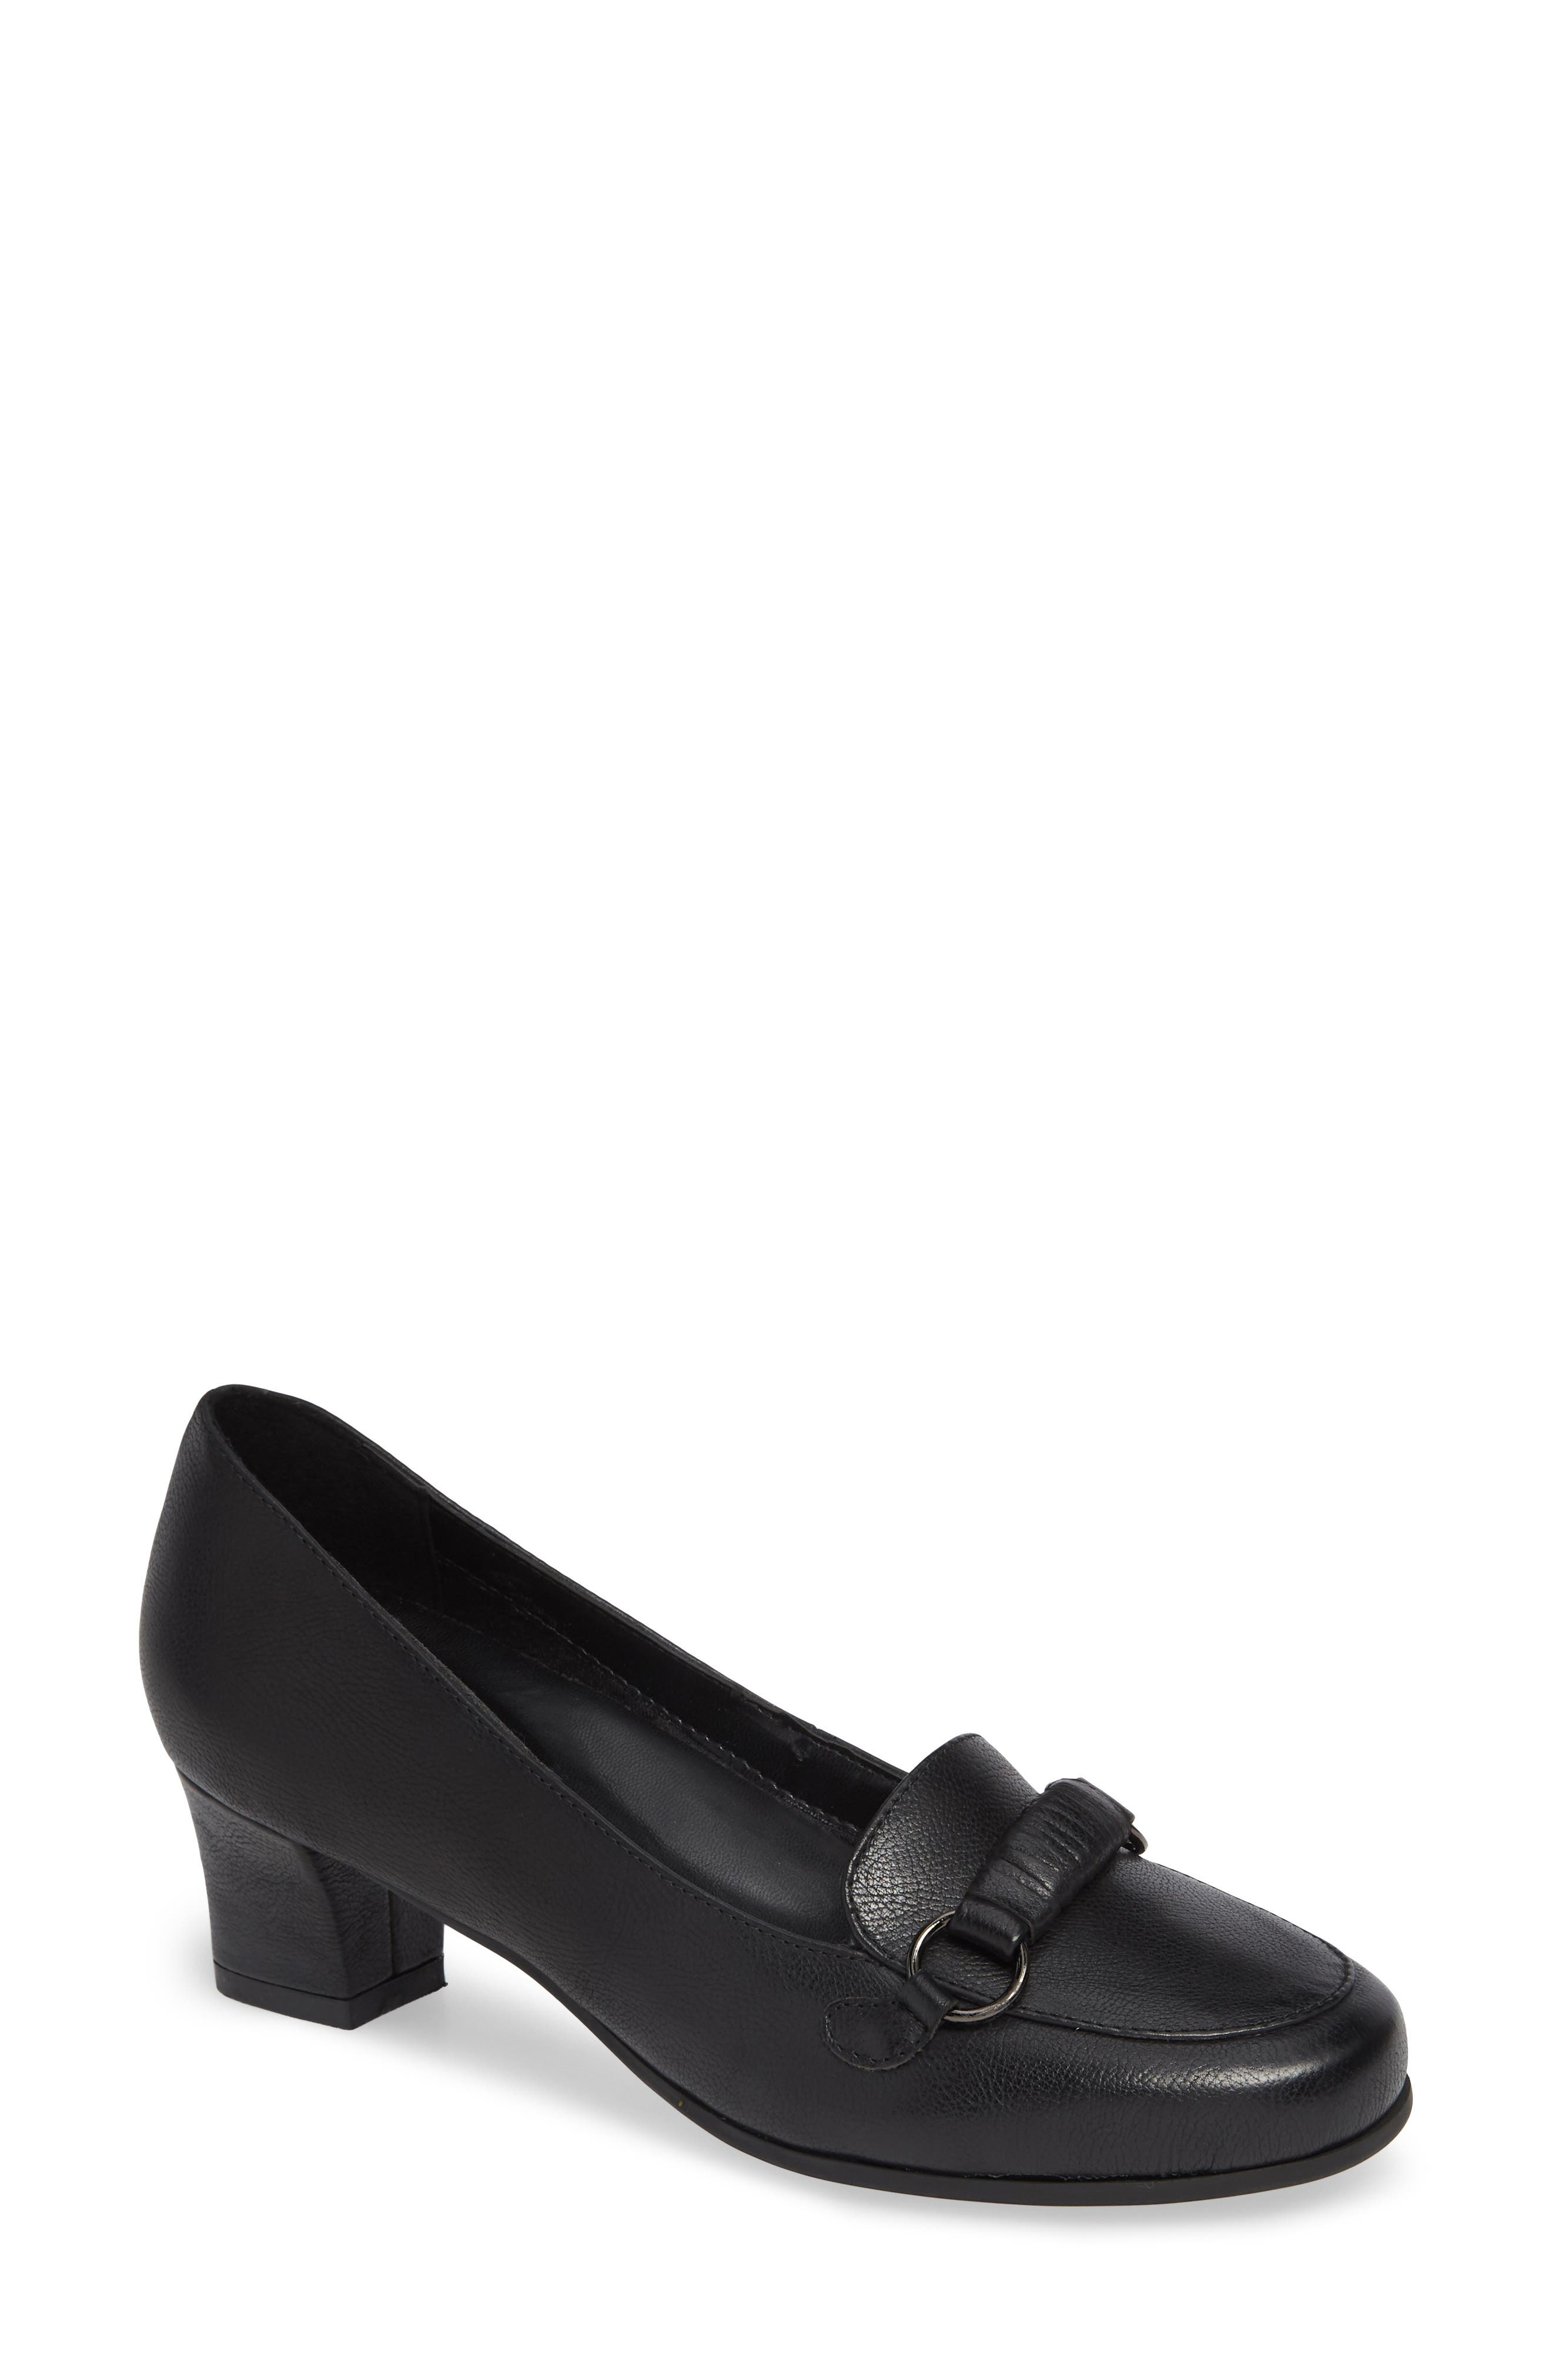 Perky Loafer Pump, Main, color, BLACK LEATHER